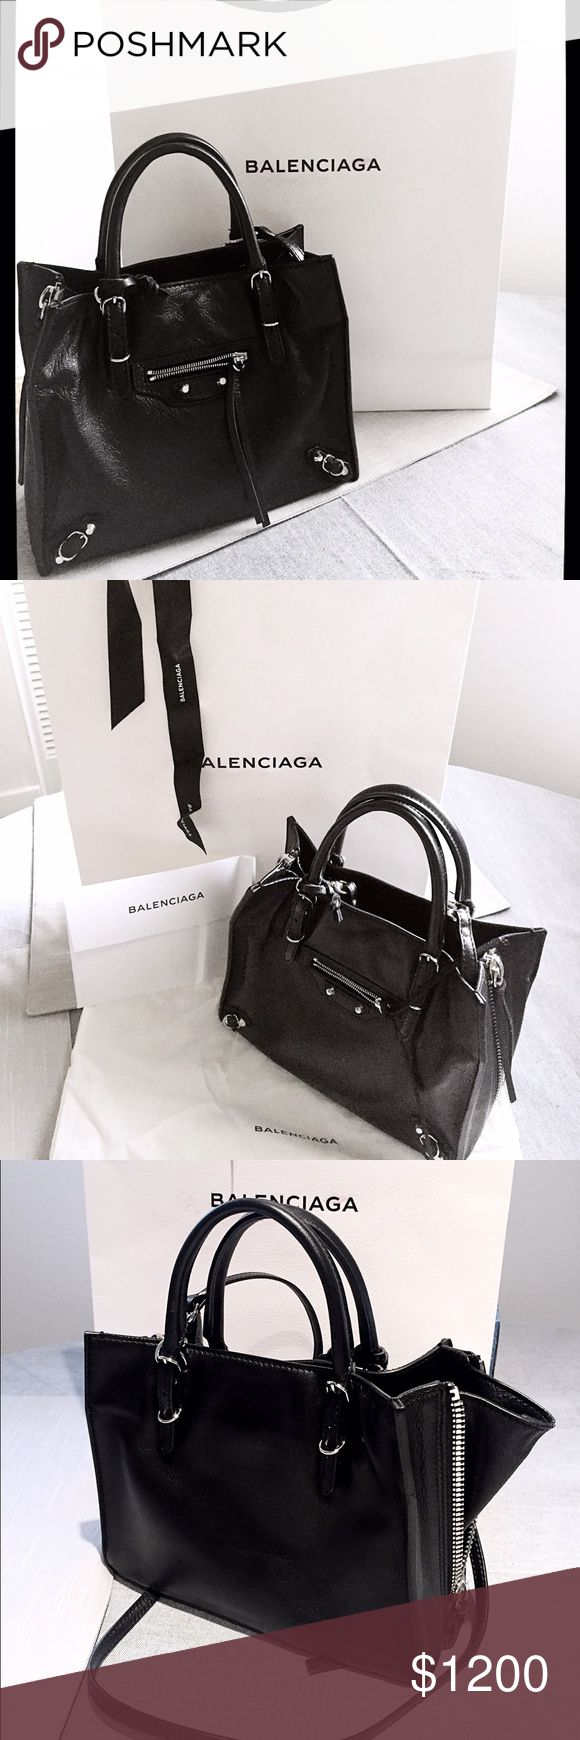 BALENCIAGA PAPIER A6 ZIP AROUND ❣️New version of zip around line and sides. ❣️Removable and adjustable shoulder strap. ❣️Material: soft calfskin made in Italy. ❣️ Balenciaga Bags Totes